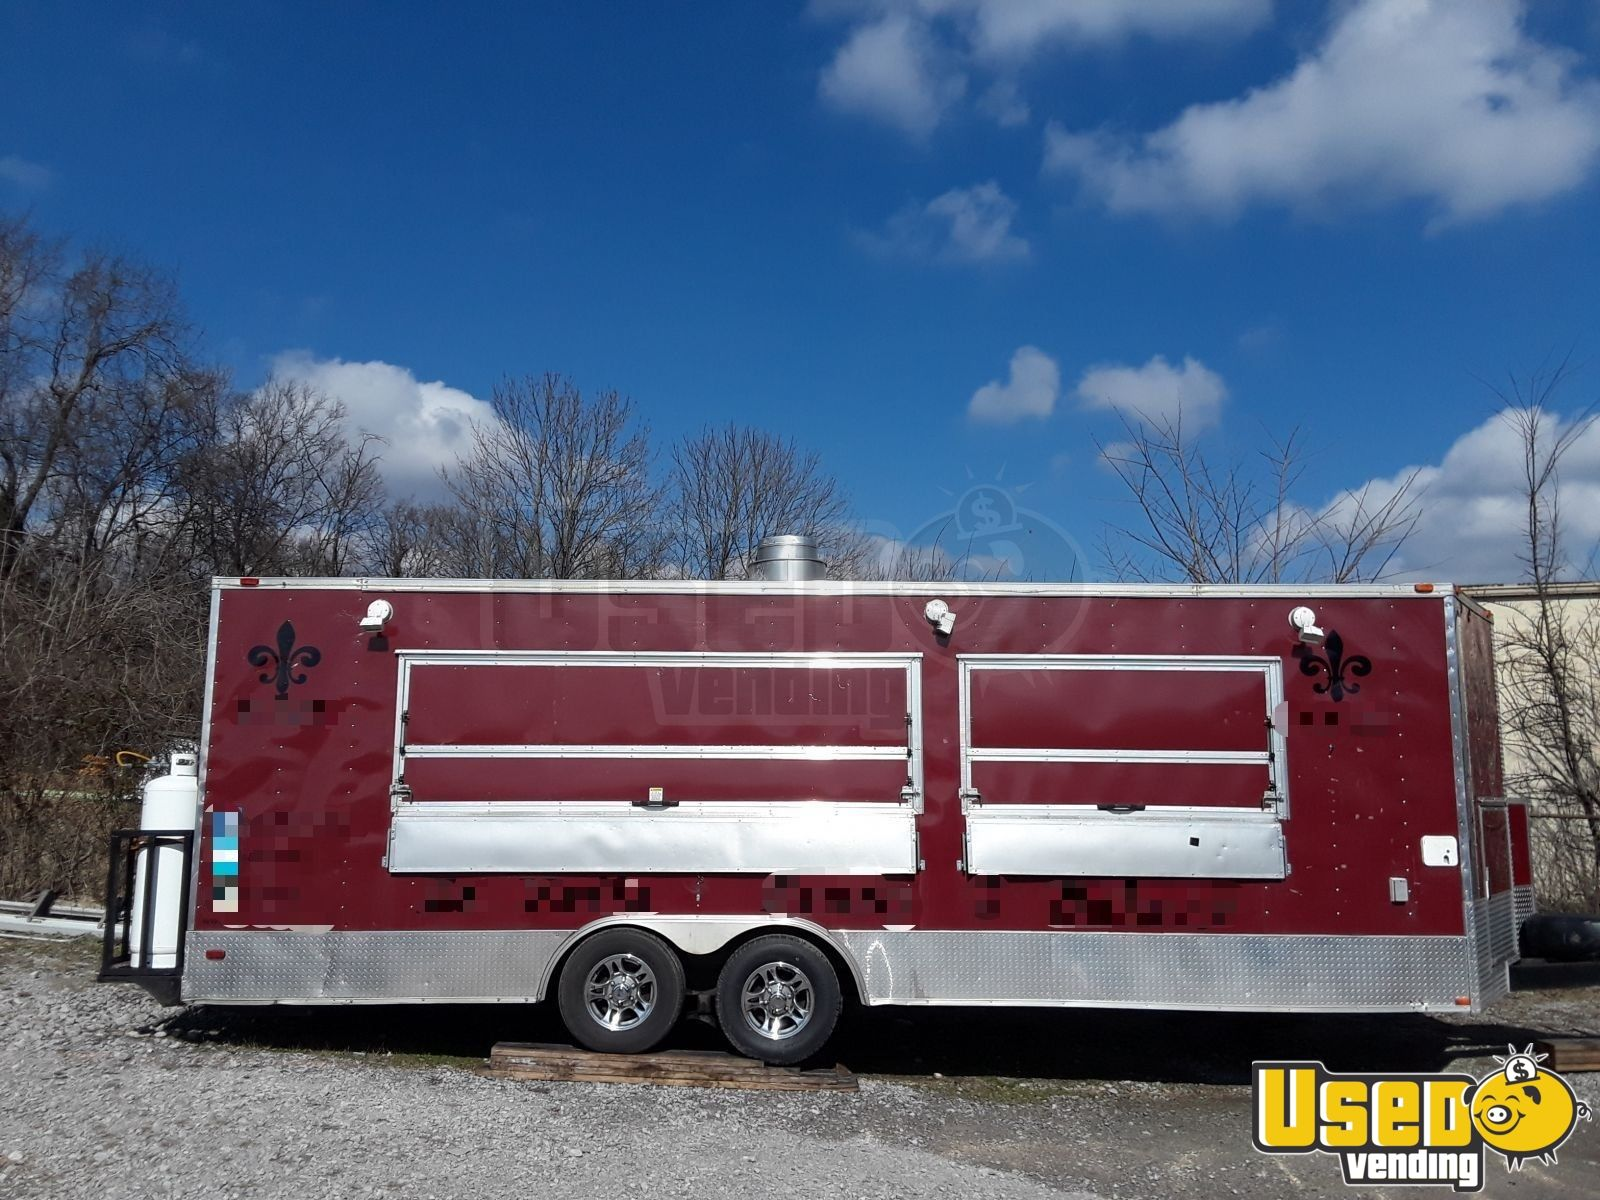 2016 Freedom Trailer 85x Concession Trailer Spare Tire Tennessee for Sale - 3